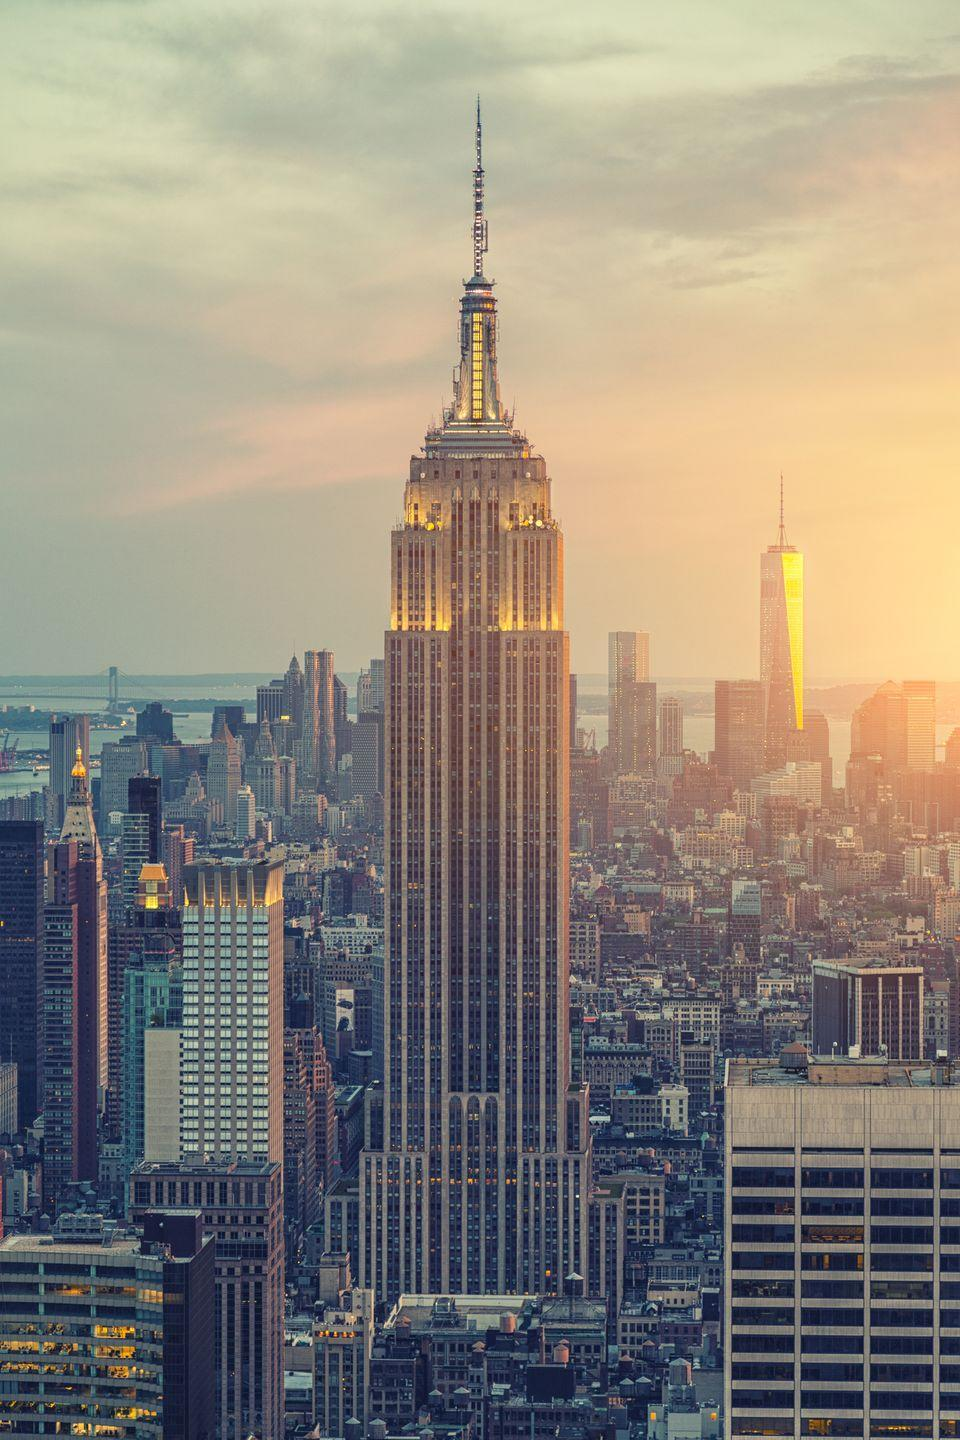 """<p>The Empire State Building is a familiar sight (even to those who have only seen it on screens or photos), but you might not know that the landmark building actually <a href=""""https://www.esbnyc.com/about/facts-figures"""" rel=""""nofollow noopener"""" target=""""_blank"""" data-ylk=""""slk:has its own zip code"""" class=""""link rapid-noclick-resp"""">has its own zip code</a> (10118). </p>"""